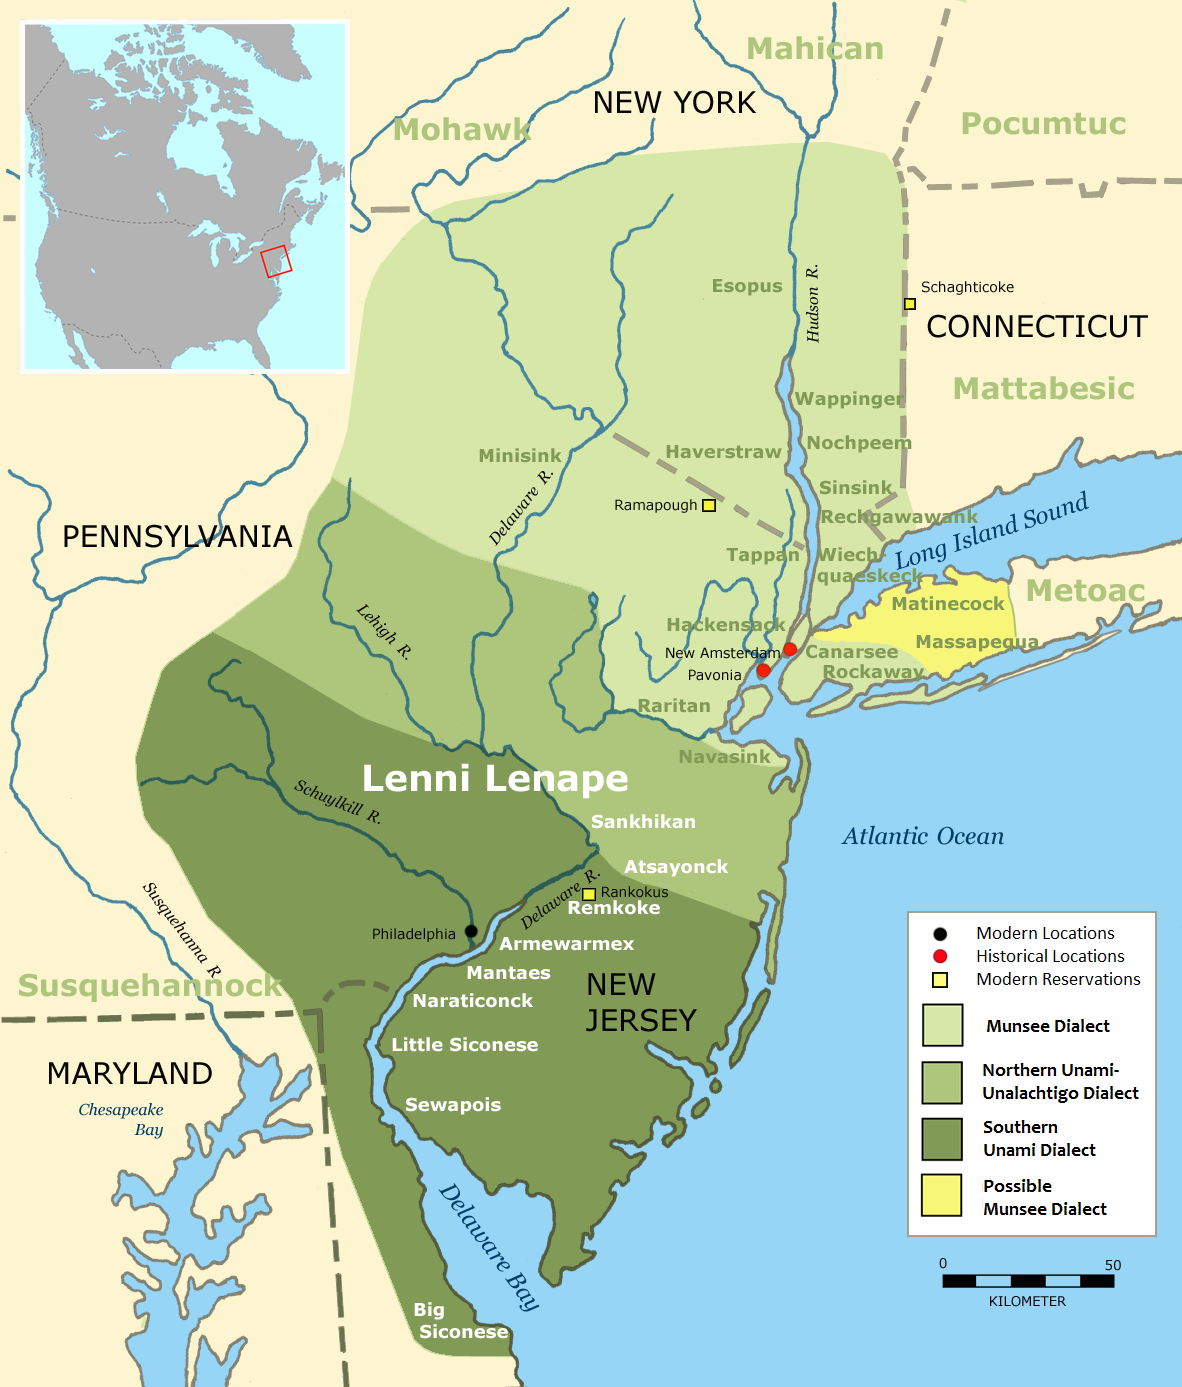 ... map 13 colonies displaying 15 images for susquehanna river map 13